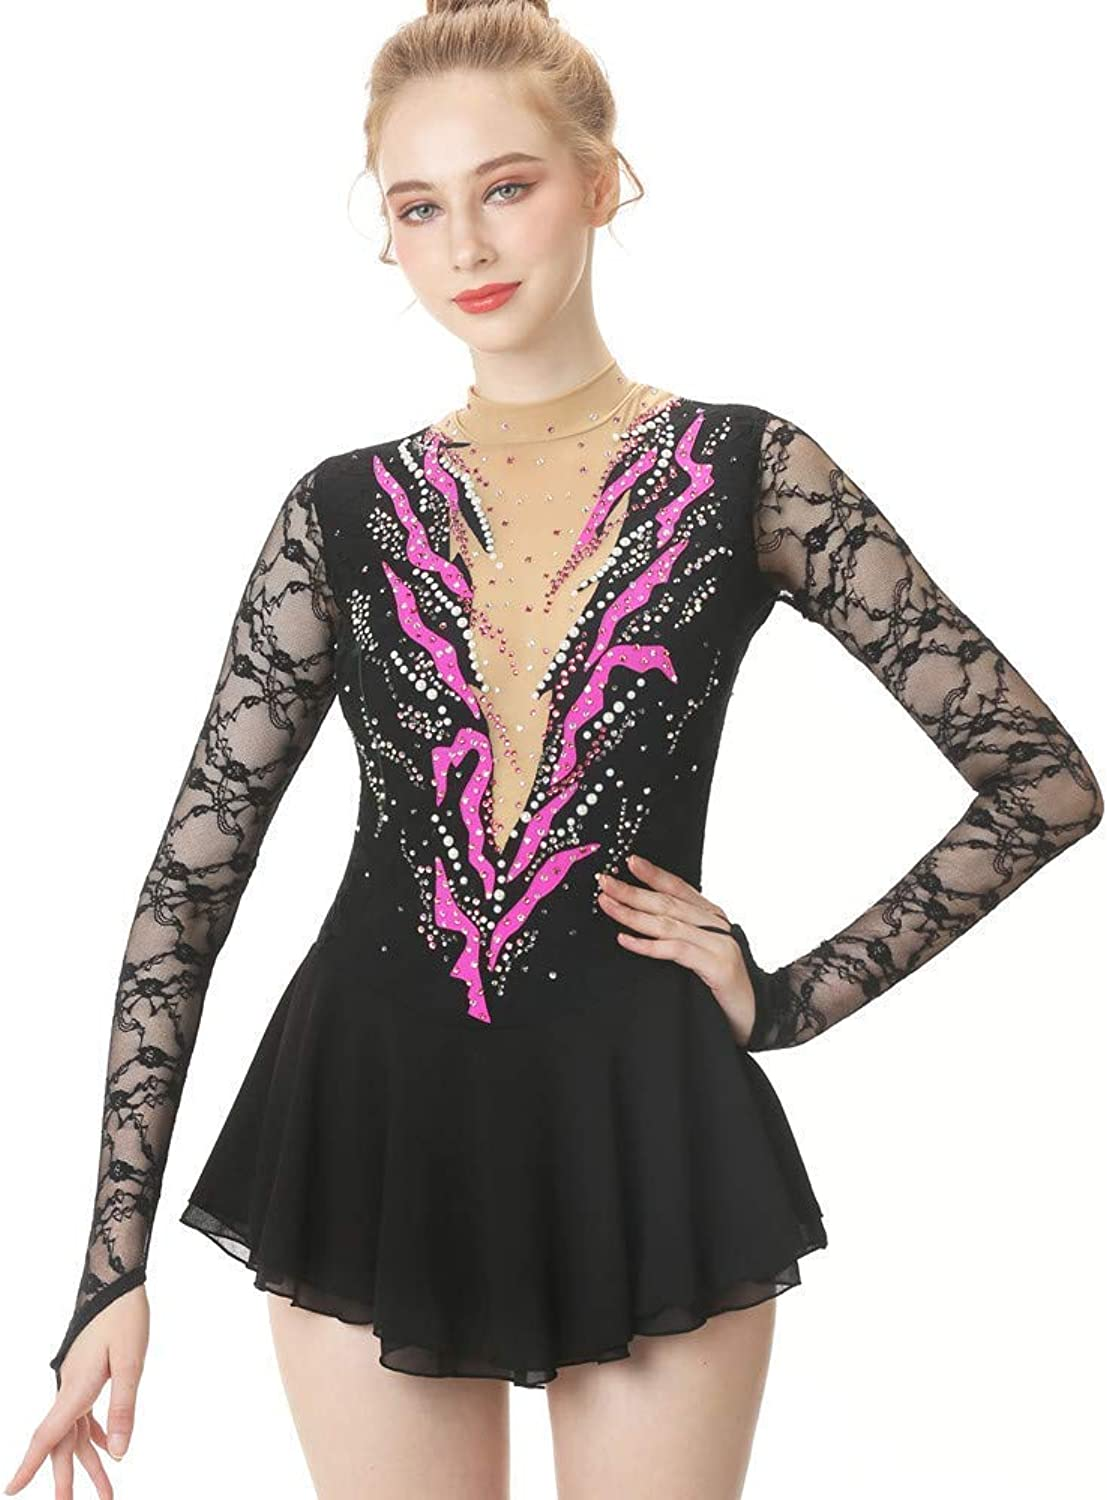 Heart&M Ice Skating Dress For Girls And Women, Handmade Figure Skating Competition Professional Costume With Lace Crystals Long Sleeved Leotard, Black